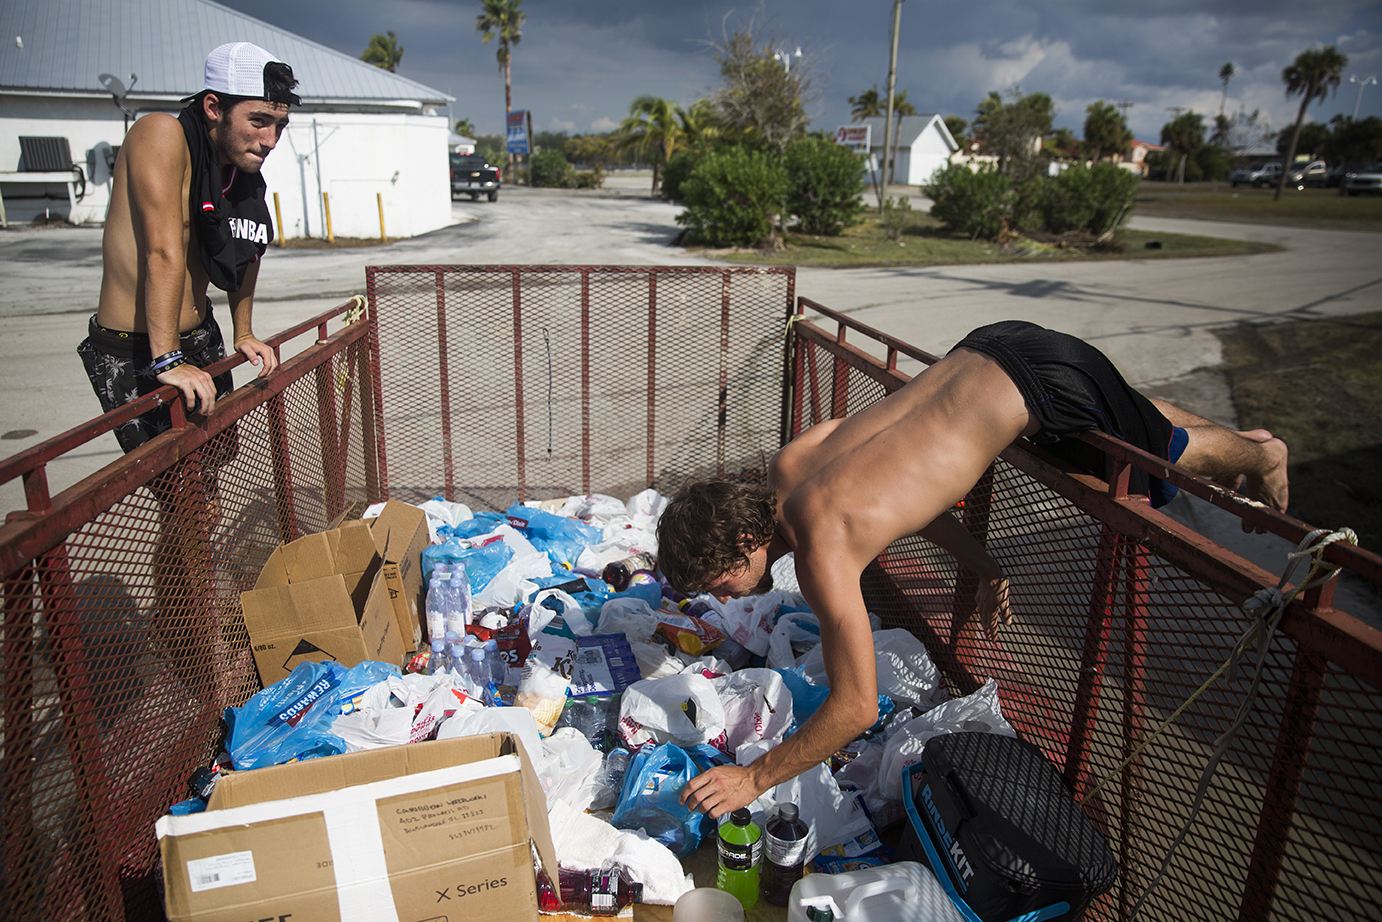 Brandon Beaty, left, looks around at the supplies as Devin Daniels, 23, reaches into a trailer of supplies for Powerade at Fire Station 60 on Wednesday, September 13, 2017 in Everglades City, three days after Hurricane Irma.